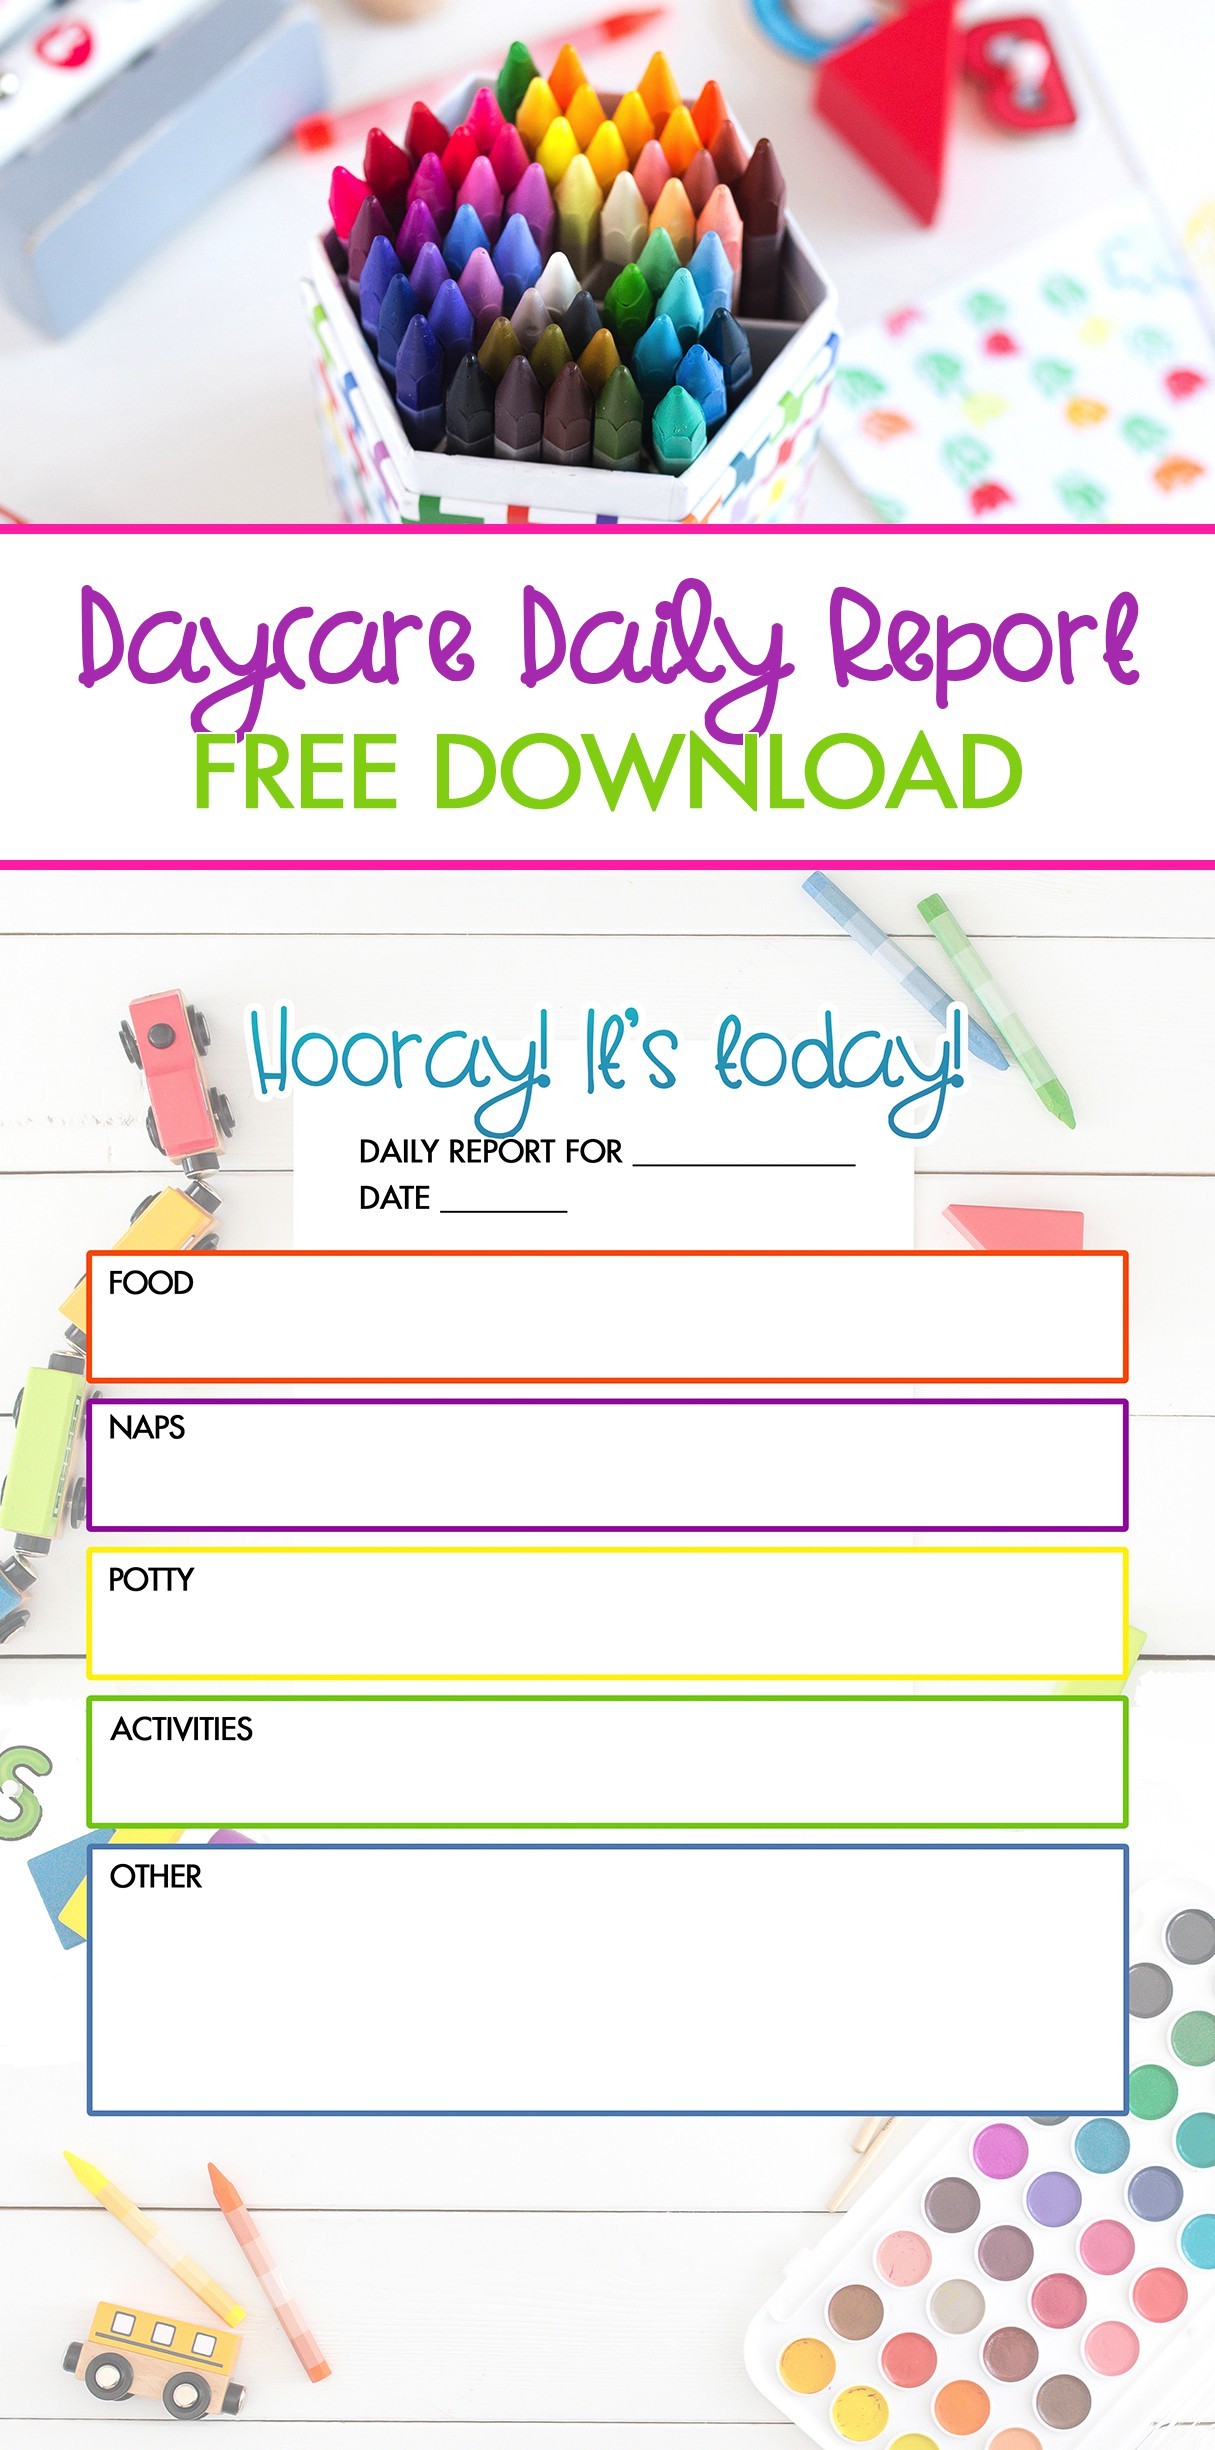 Free Daycare Daily Report Printable Pinterest